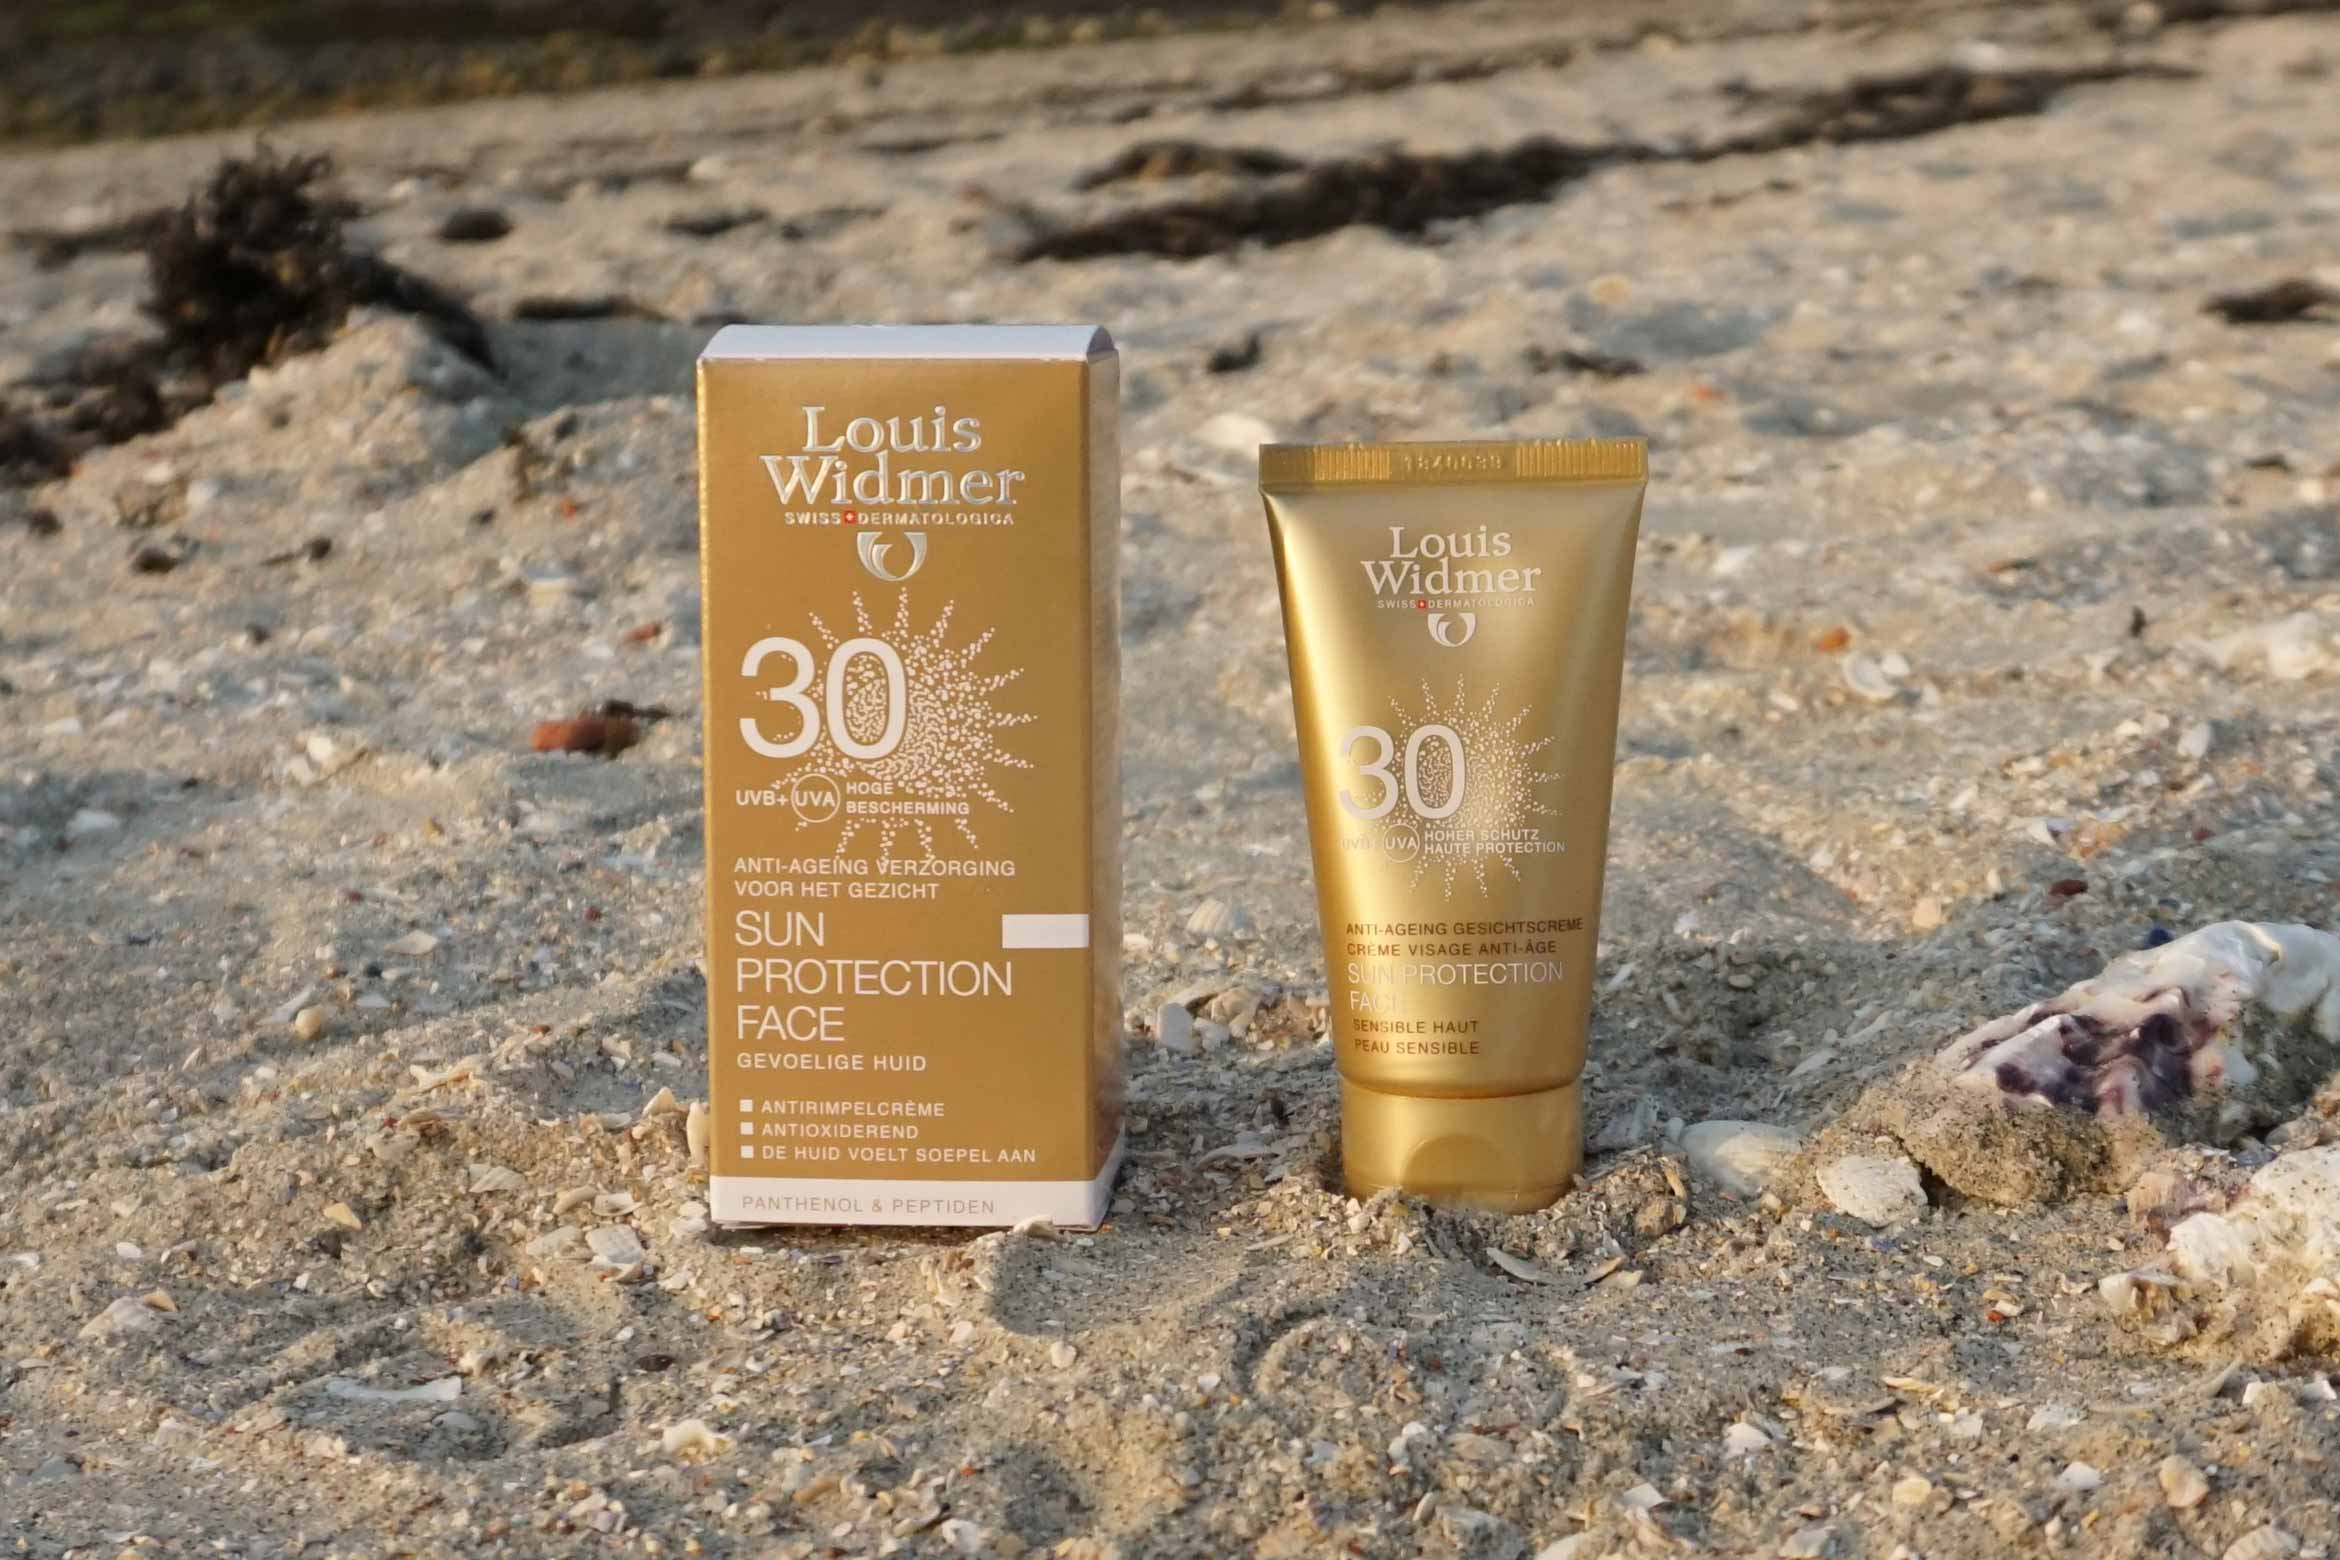 louis-widmer-sun-protection-face-review-3